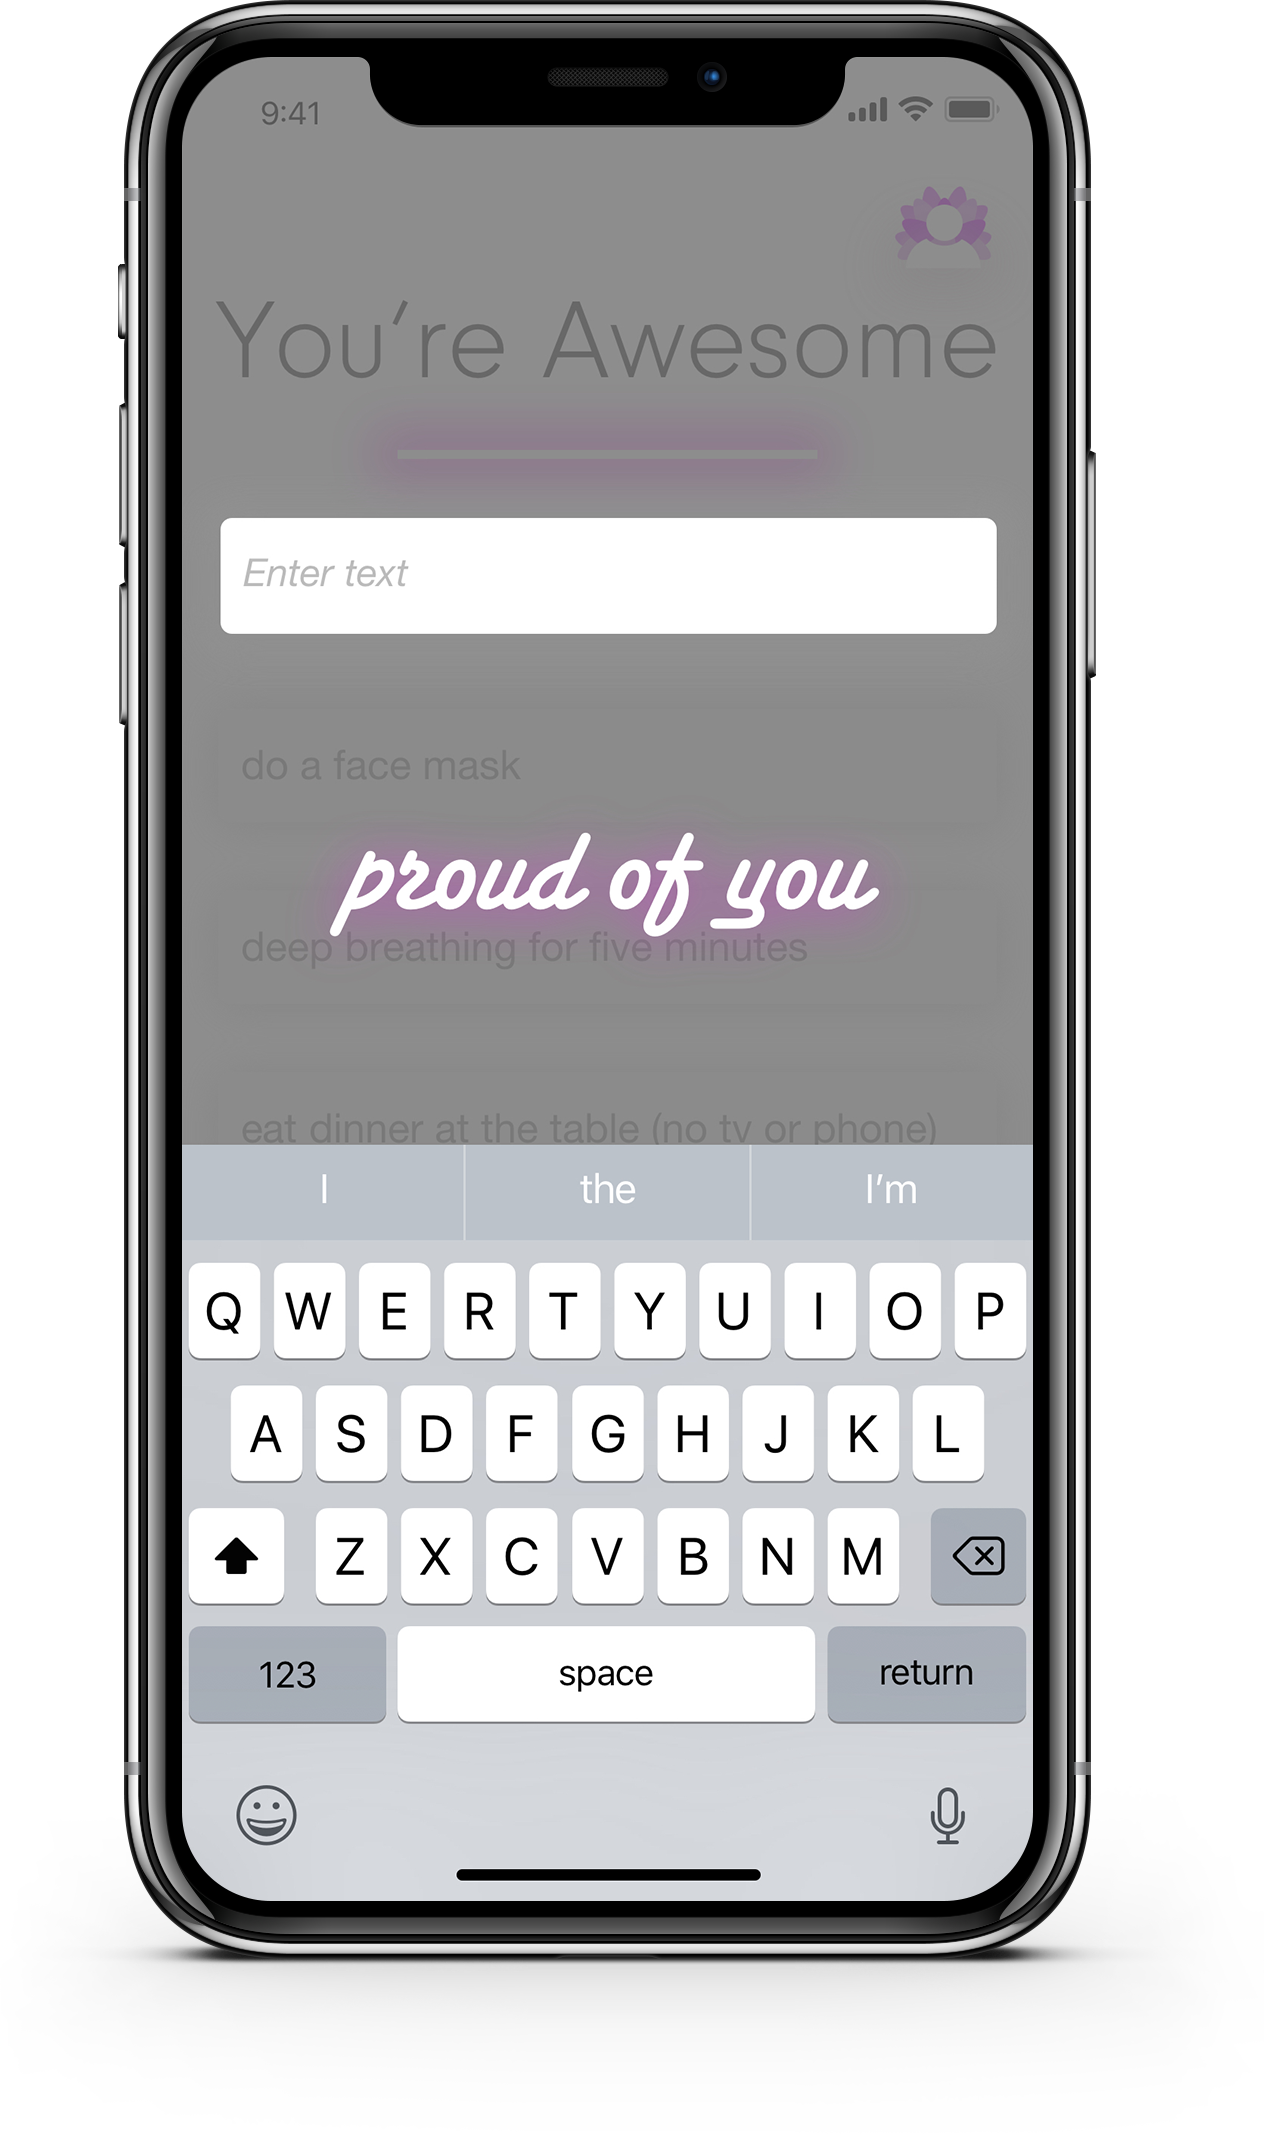 """This is the super simple interface for inputting a task. No alarms, no reminders, just a text box. A small dose of  positive reinforcement can be really important in encouraging continued use  of a wellness app (or any app!). I placed the text box below """"You're Awesome"""" intentionally to keep that visible."""